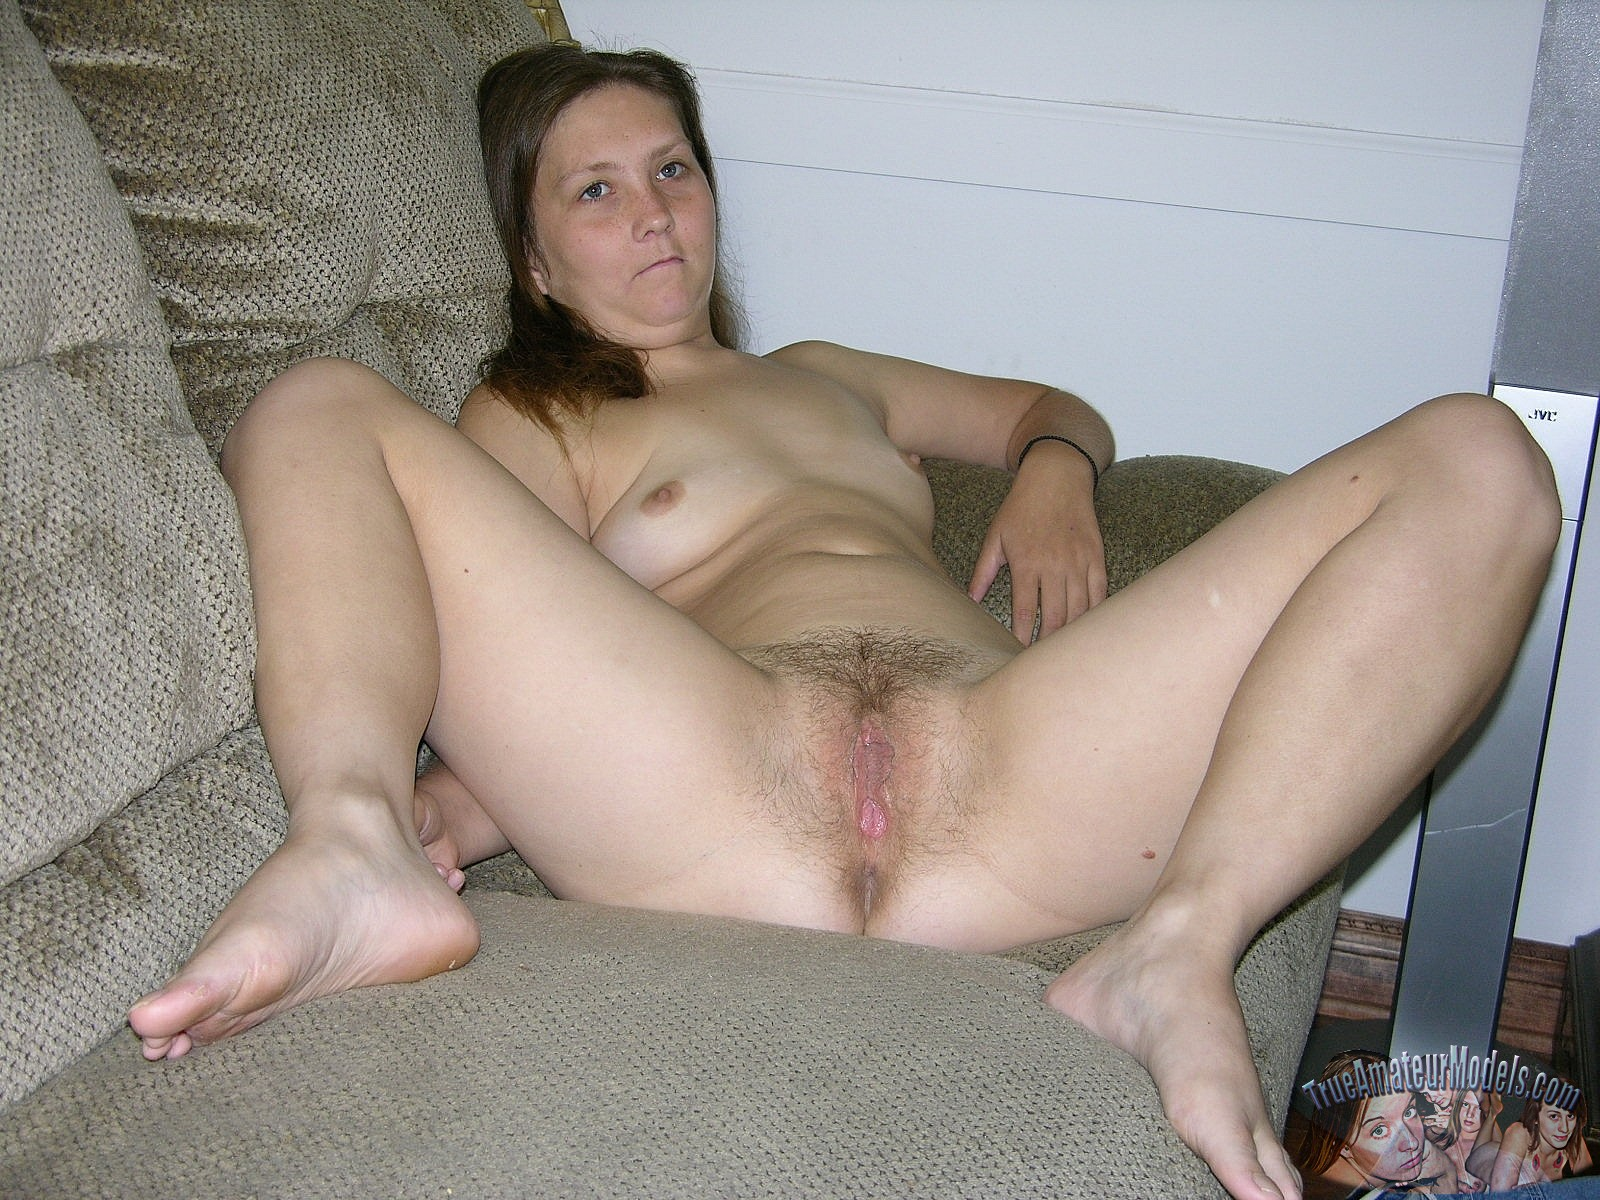 nude females from morgantown wv